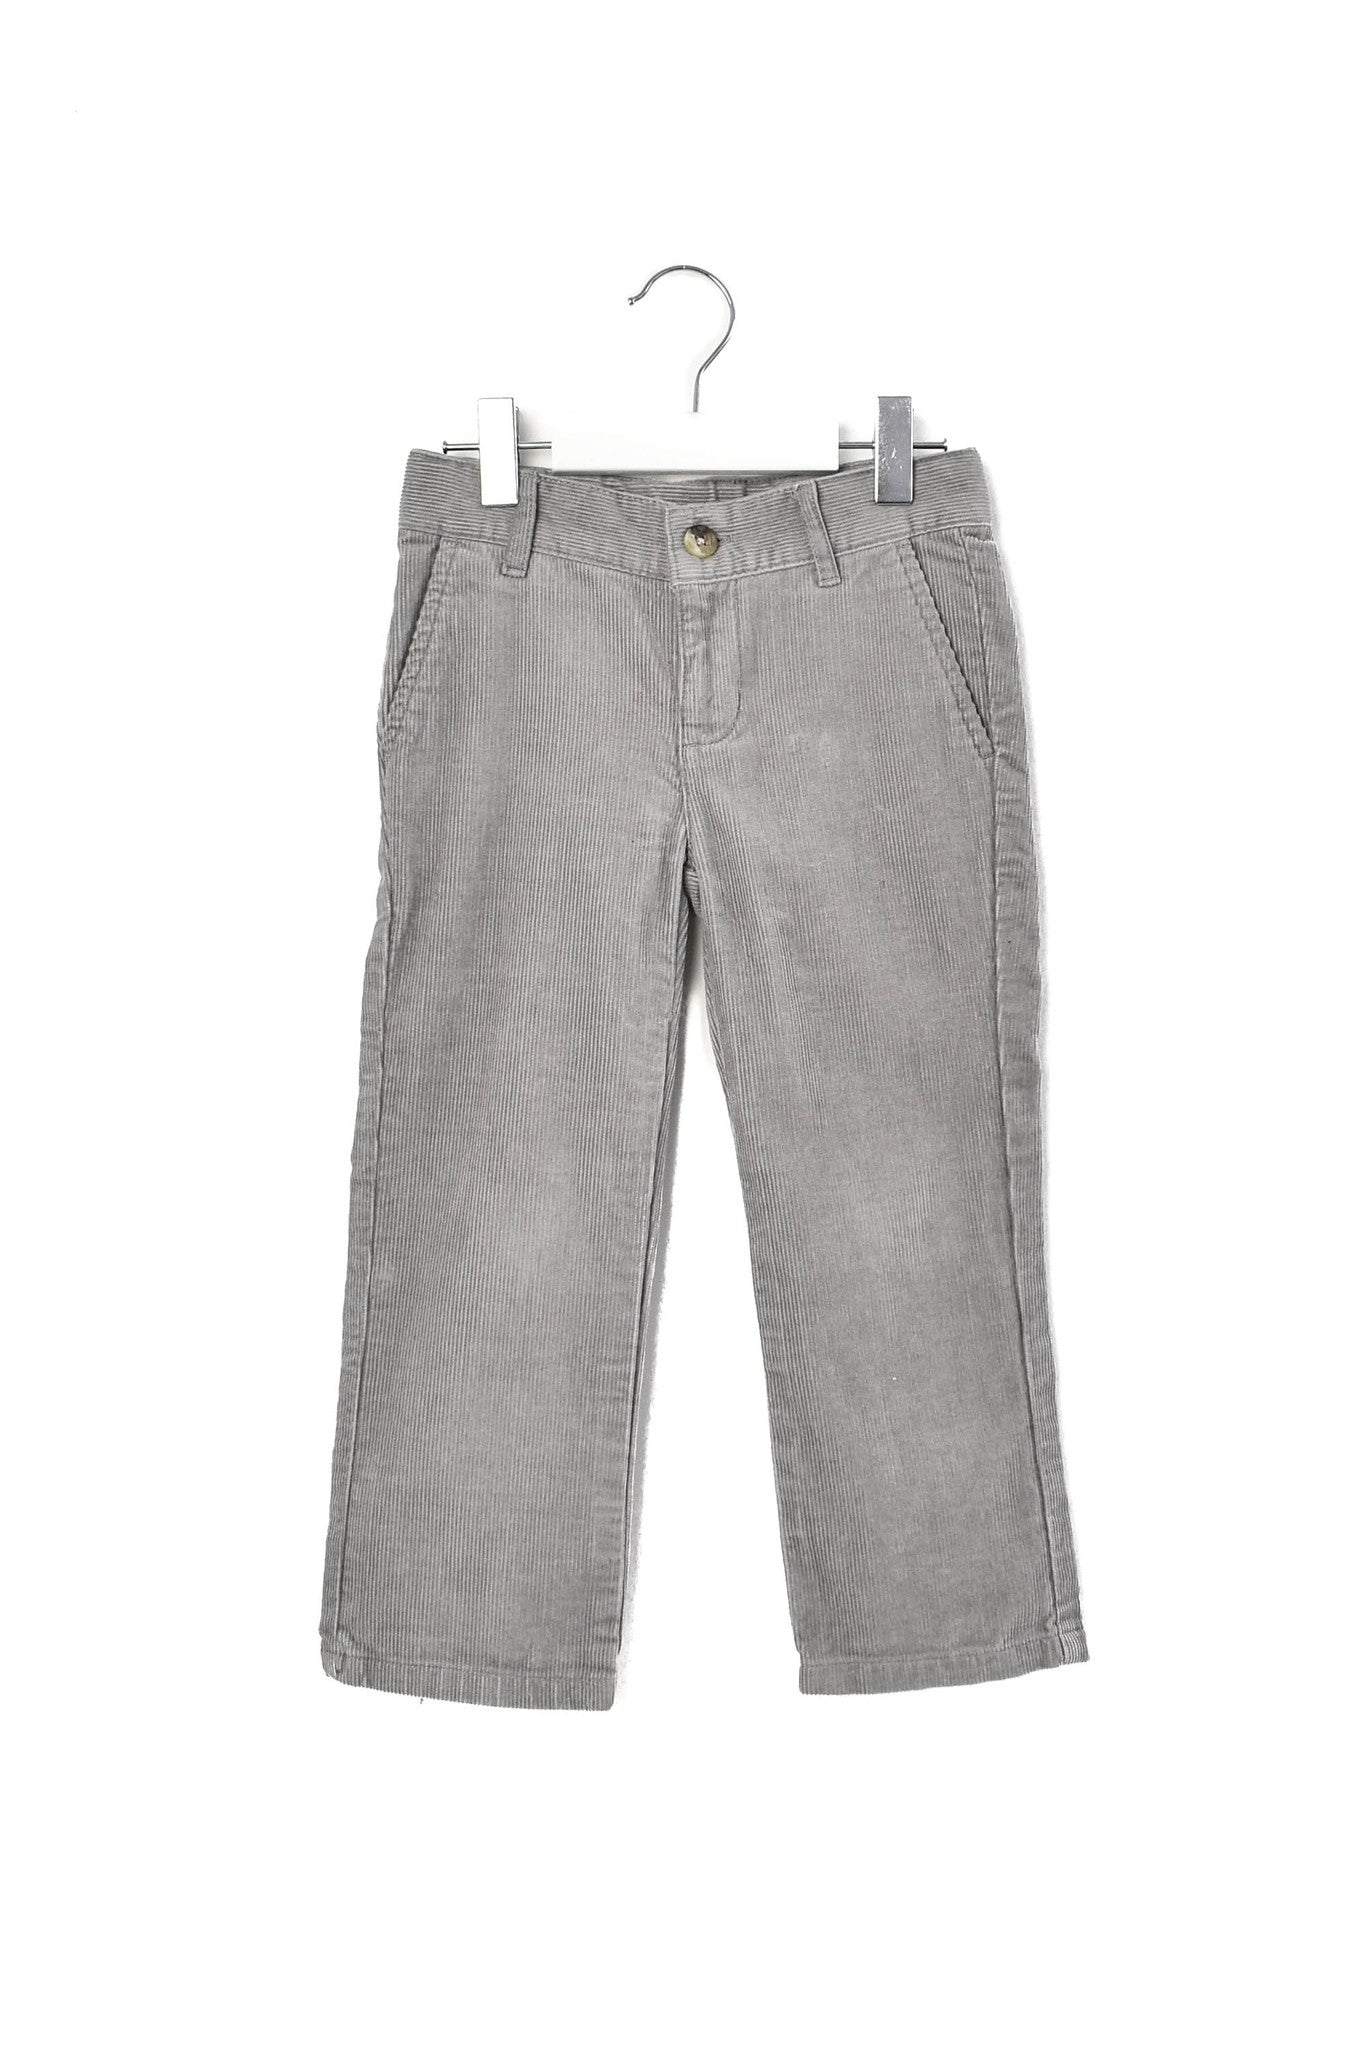 10003604 Janie & Jack Kids~Jeans 3T at Retykle